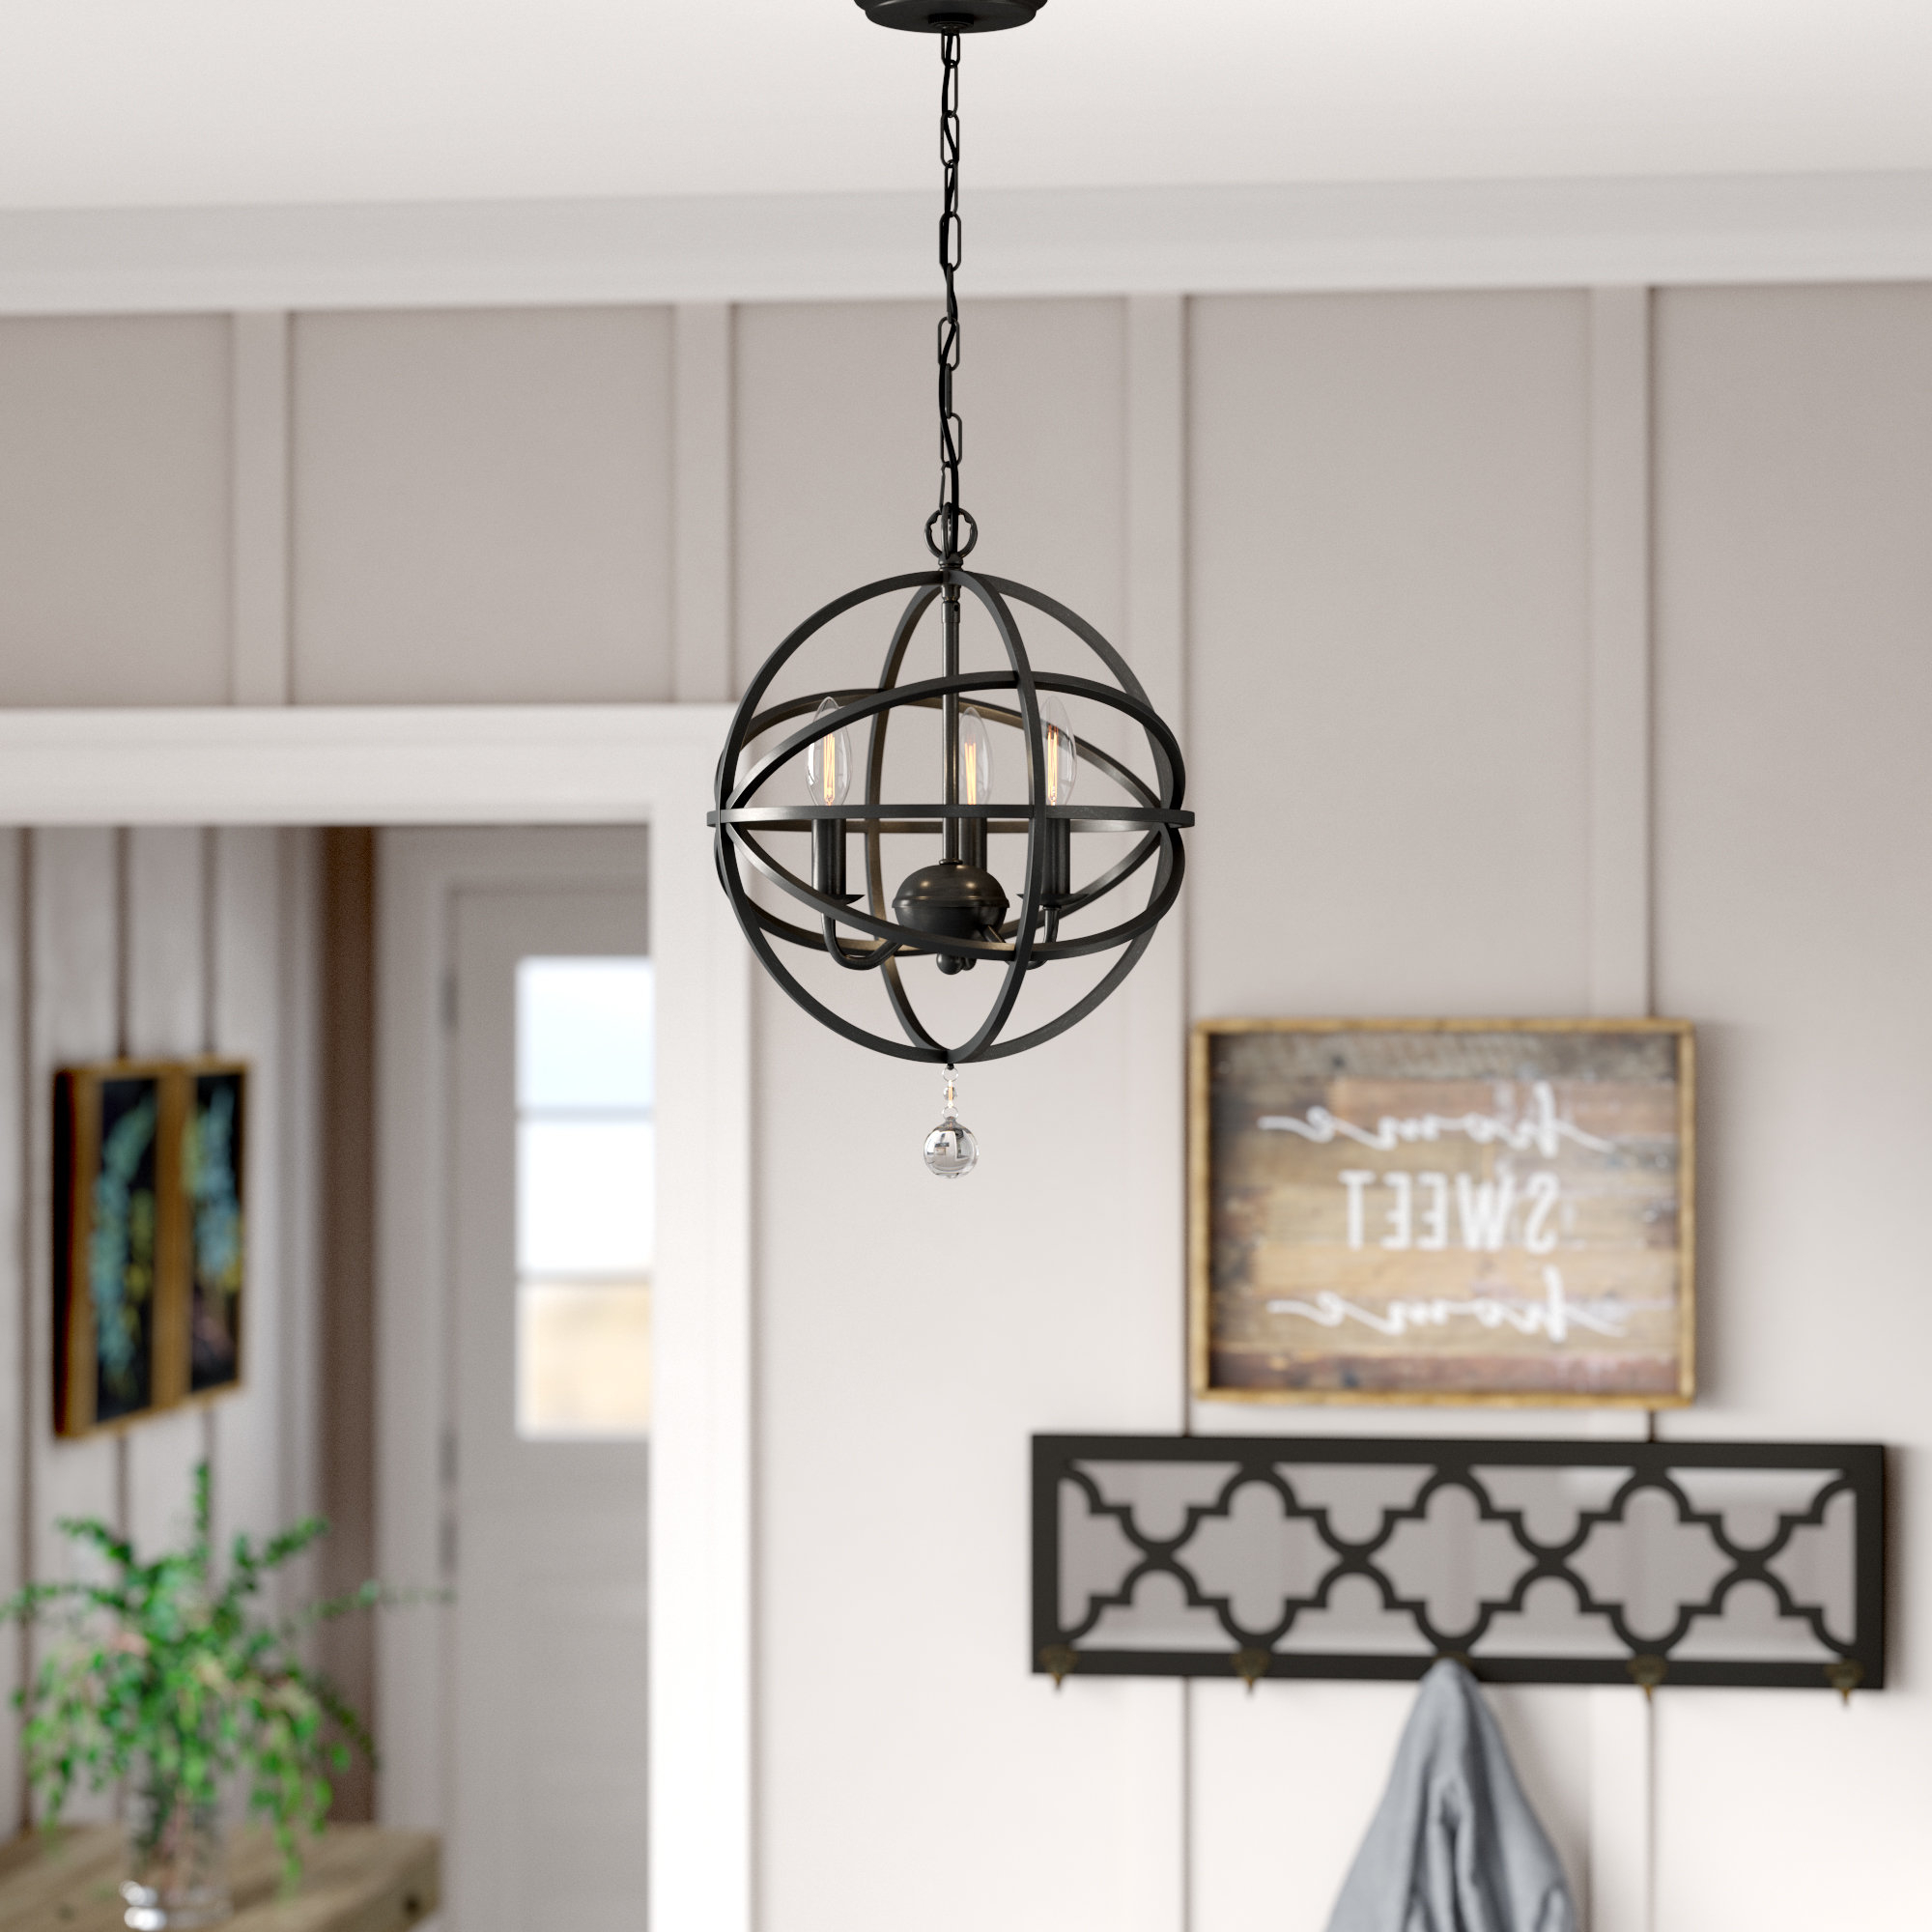 Shipststour 3 Light Globe Chandeliers For Famous Gracie Oaks Eastcote 3 Light Globe Chandelier & Reviews (View 16 of 20)